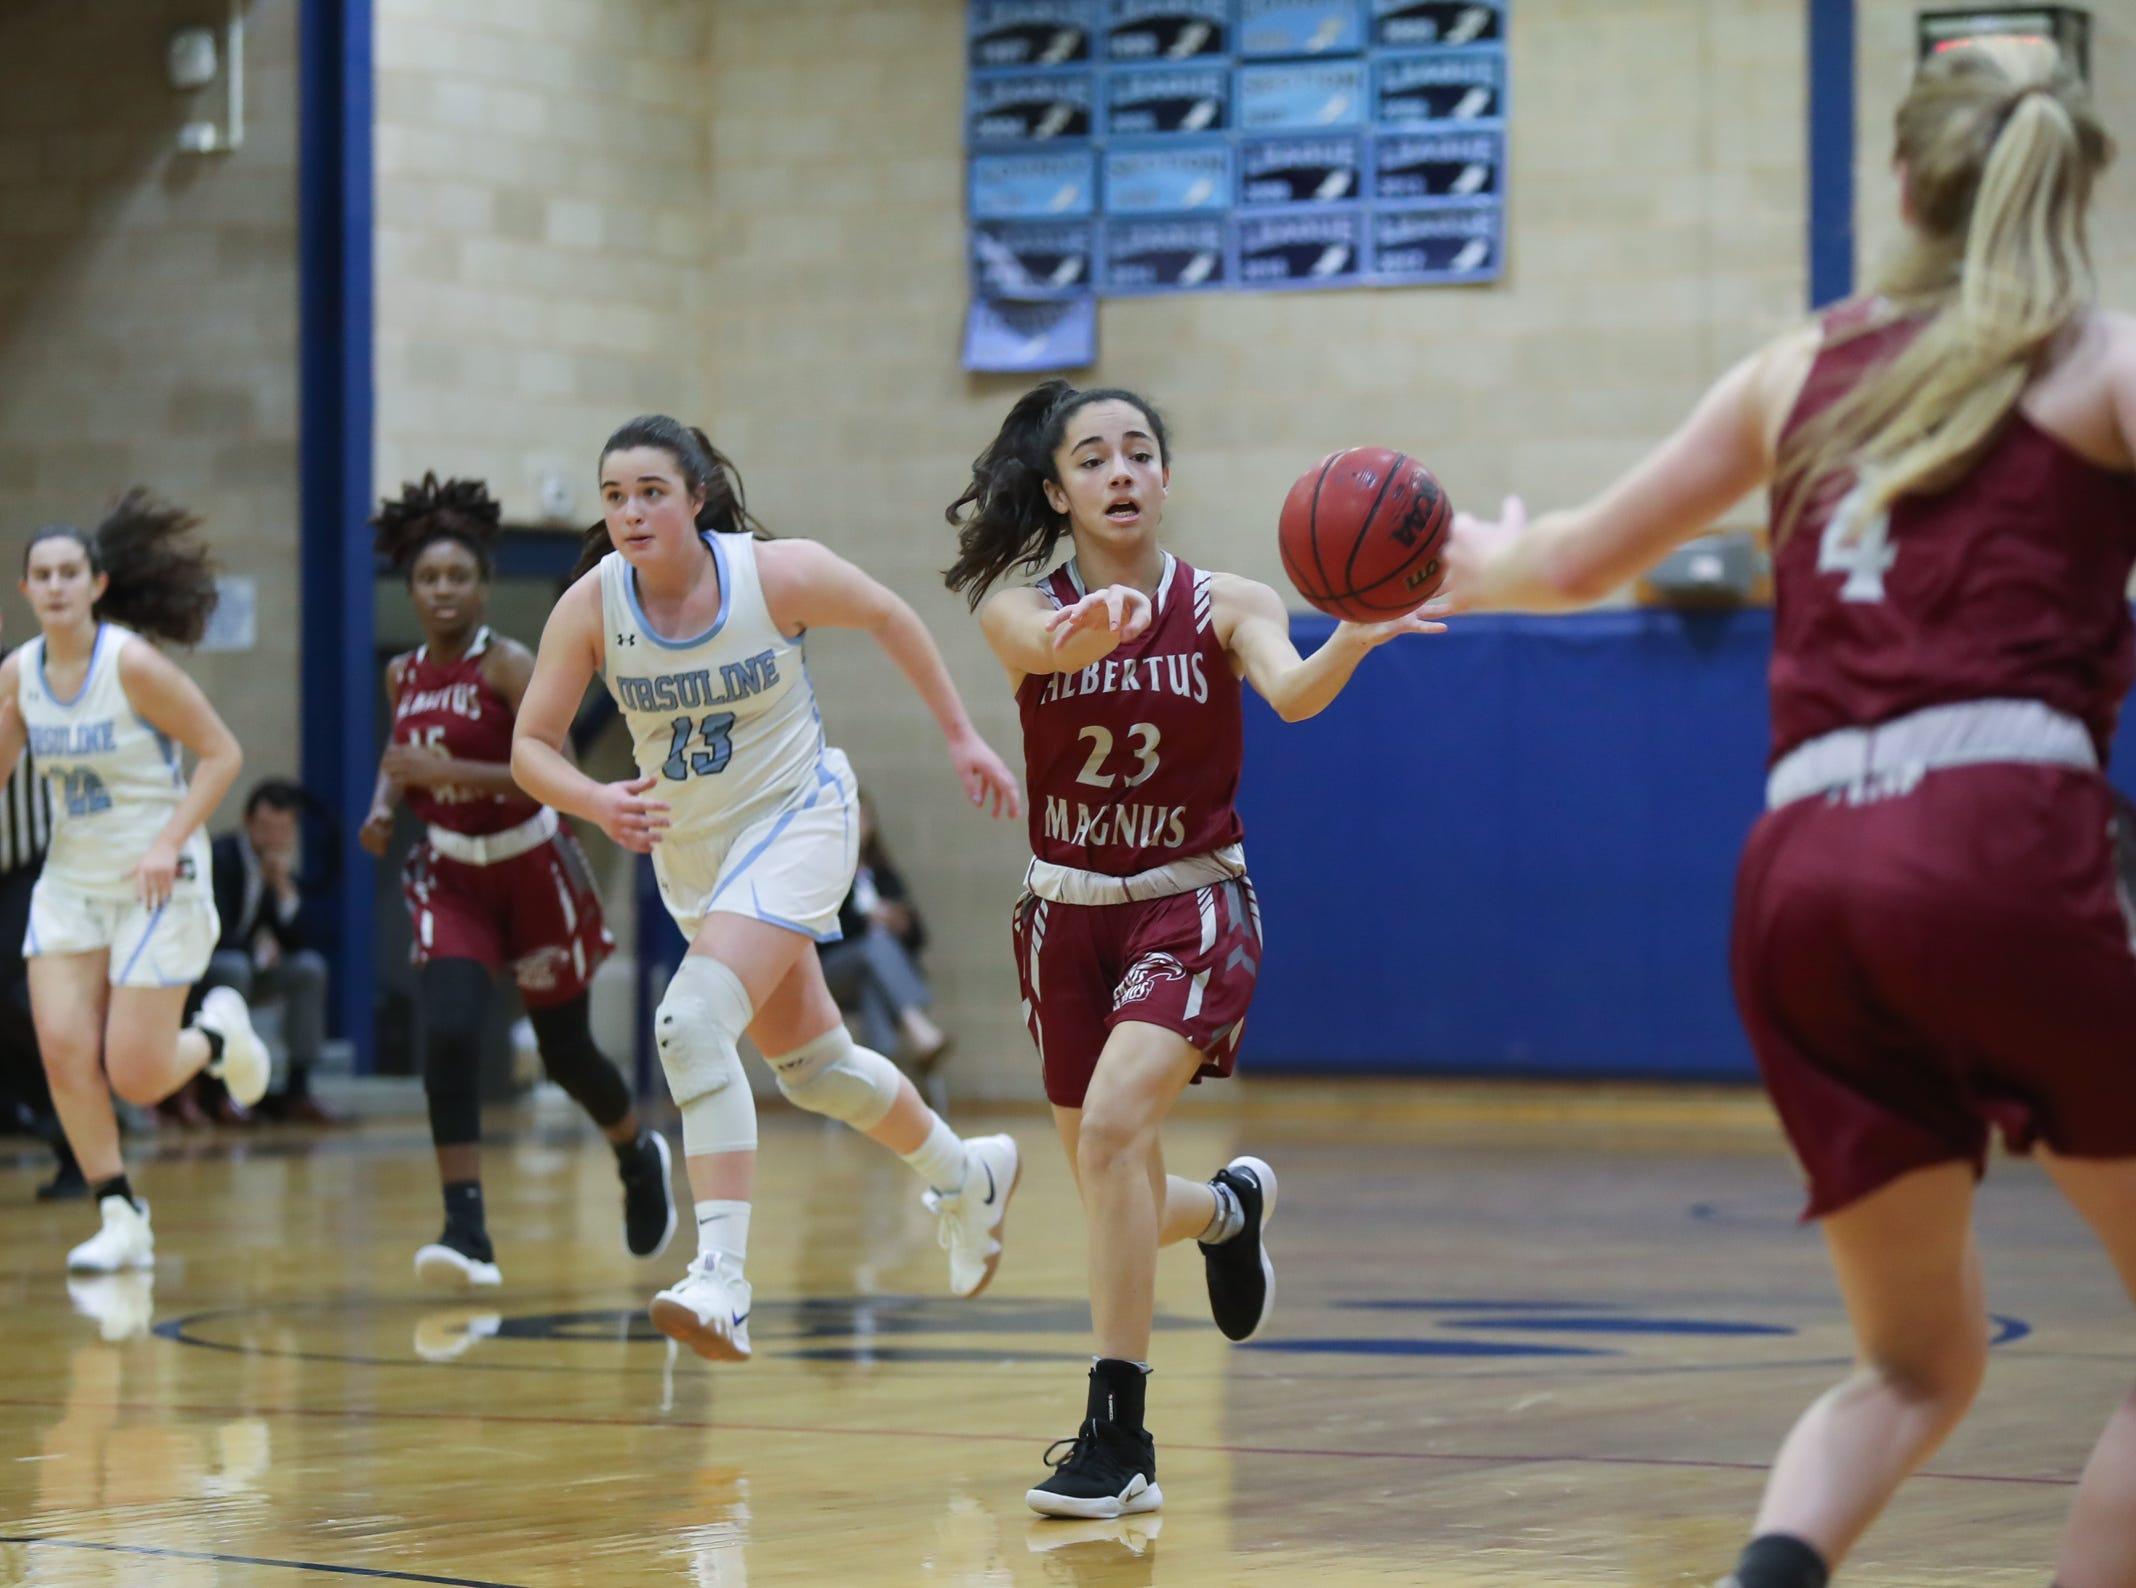 Ursuline defeats Albertus 68-48 in girls varsity basketball action at The Ursuline School in New Rochelle on Wednesday, January 9, 2019.